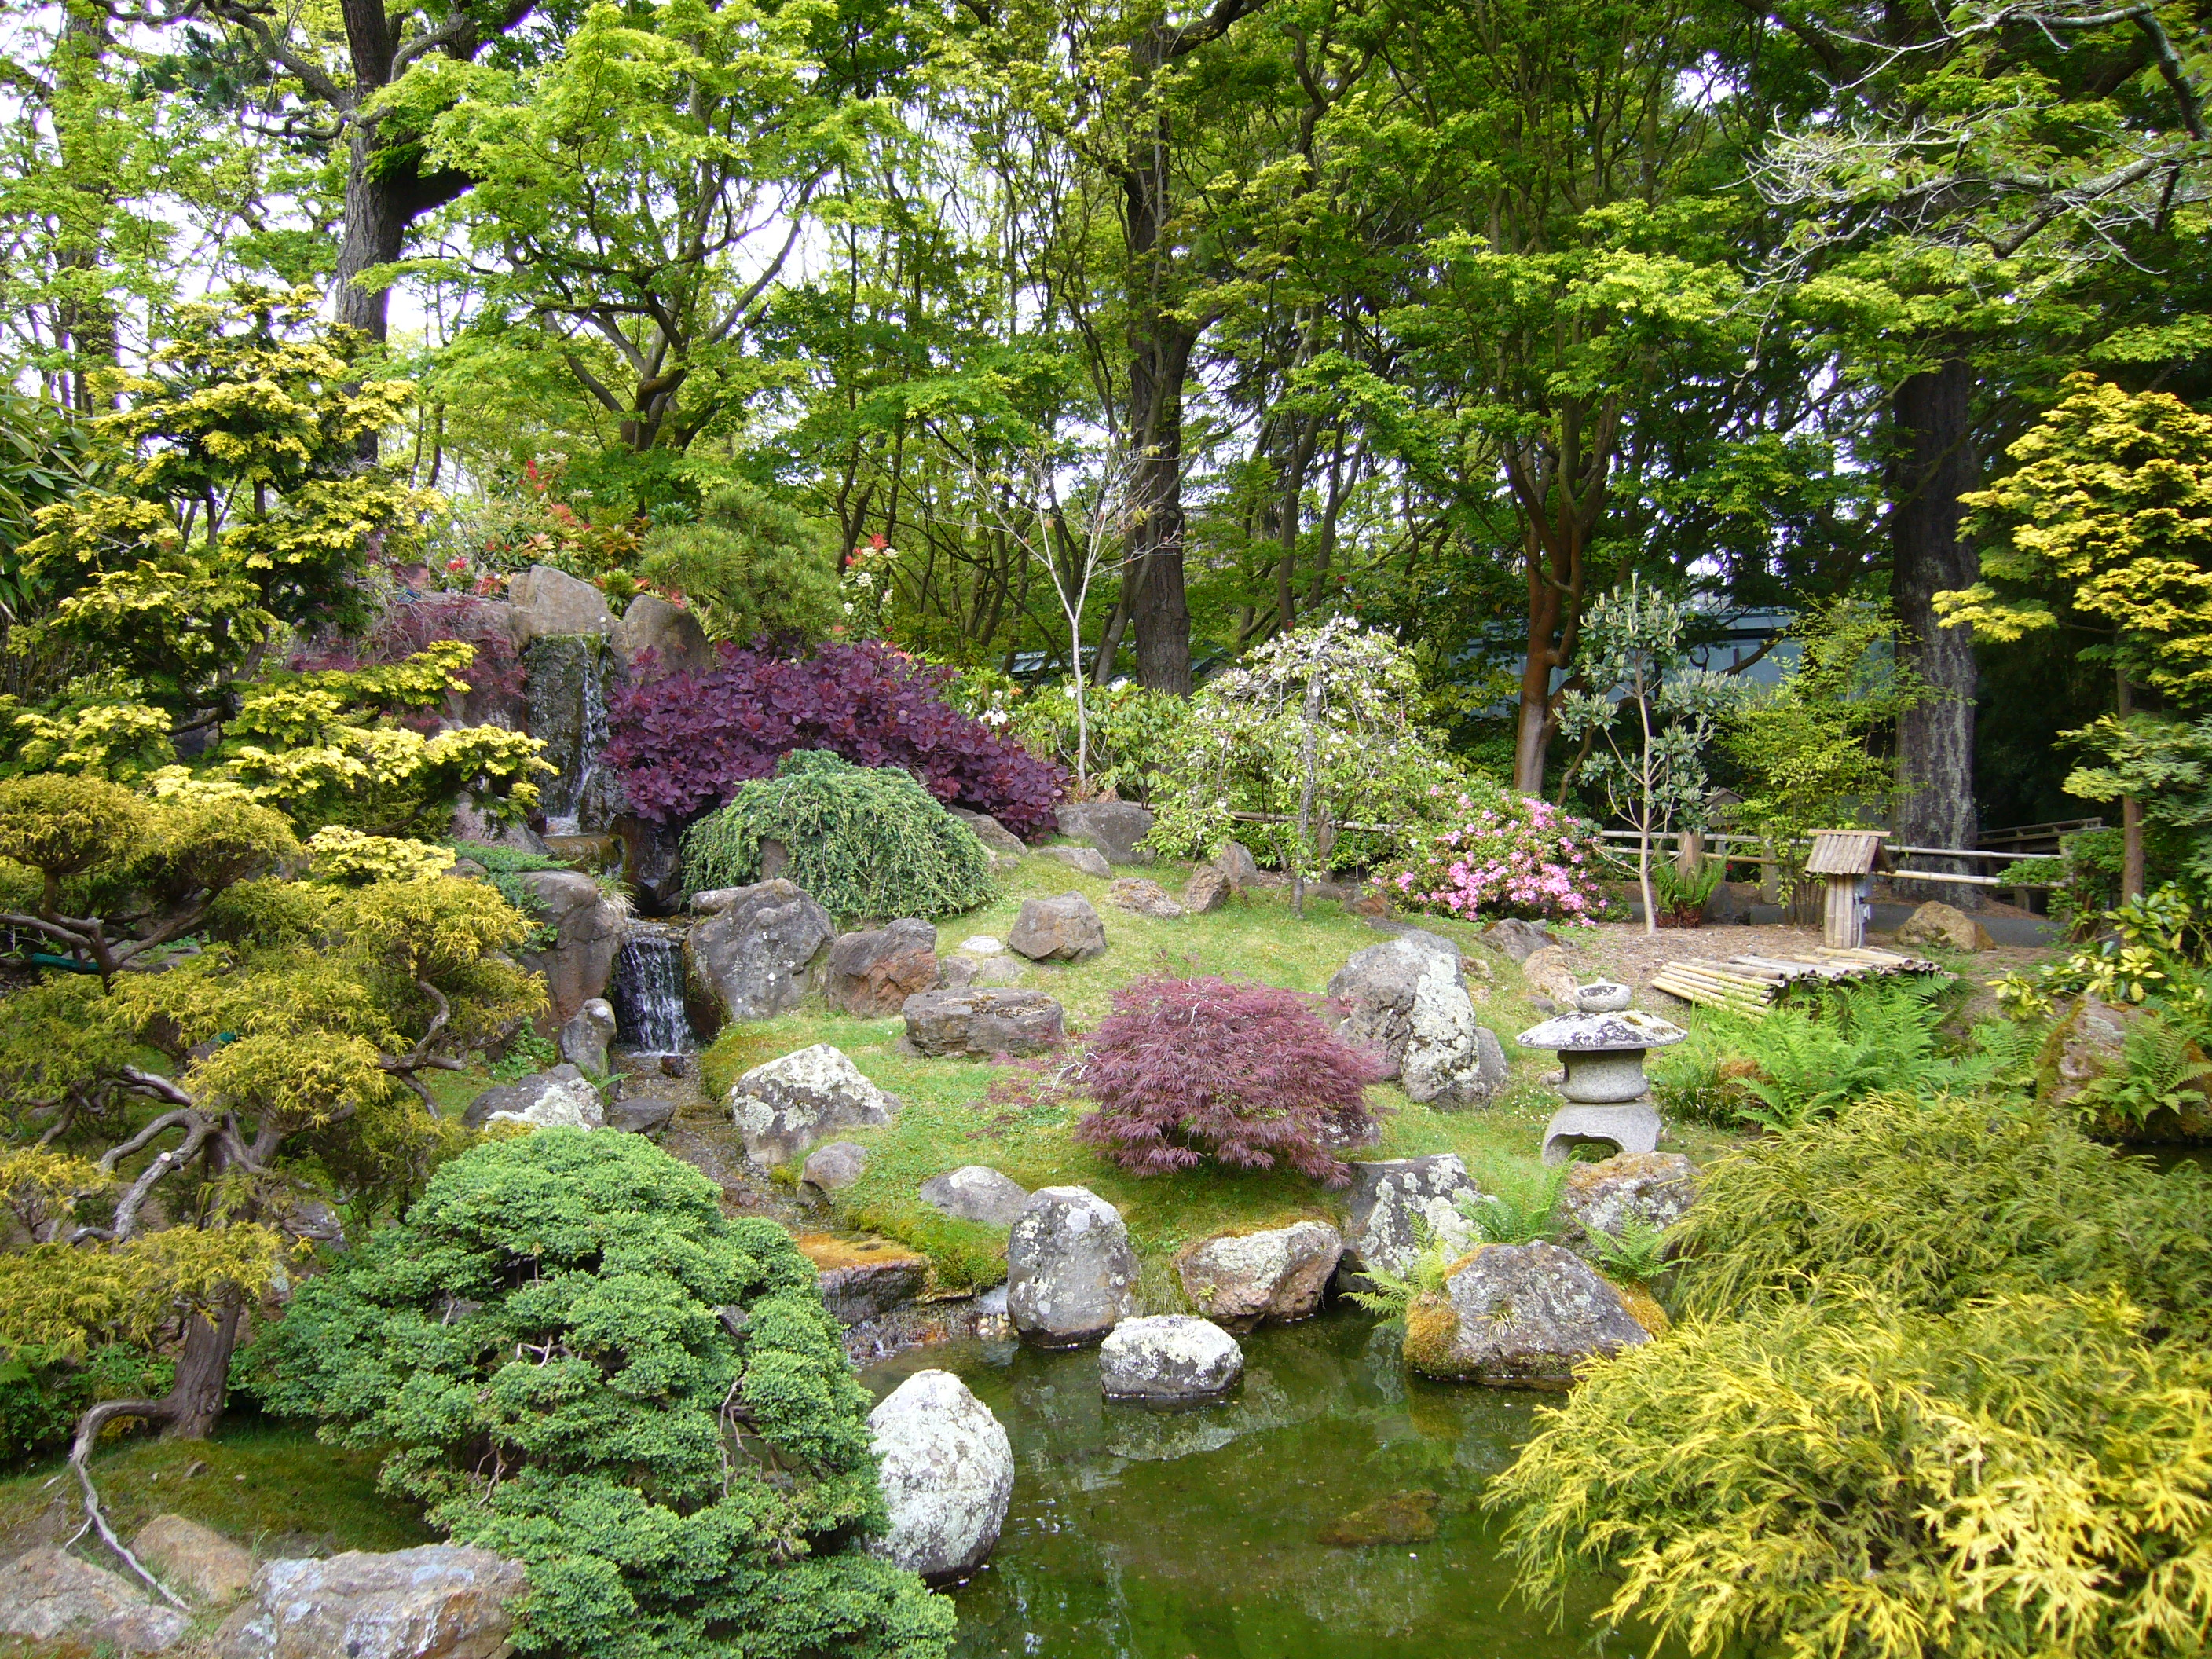 File:SF Japanese Garden.JPG